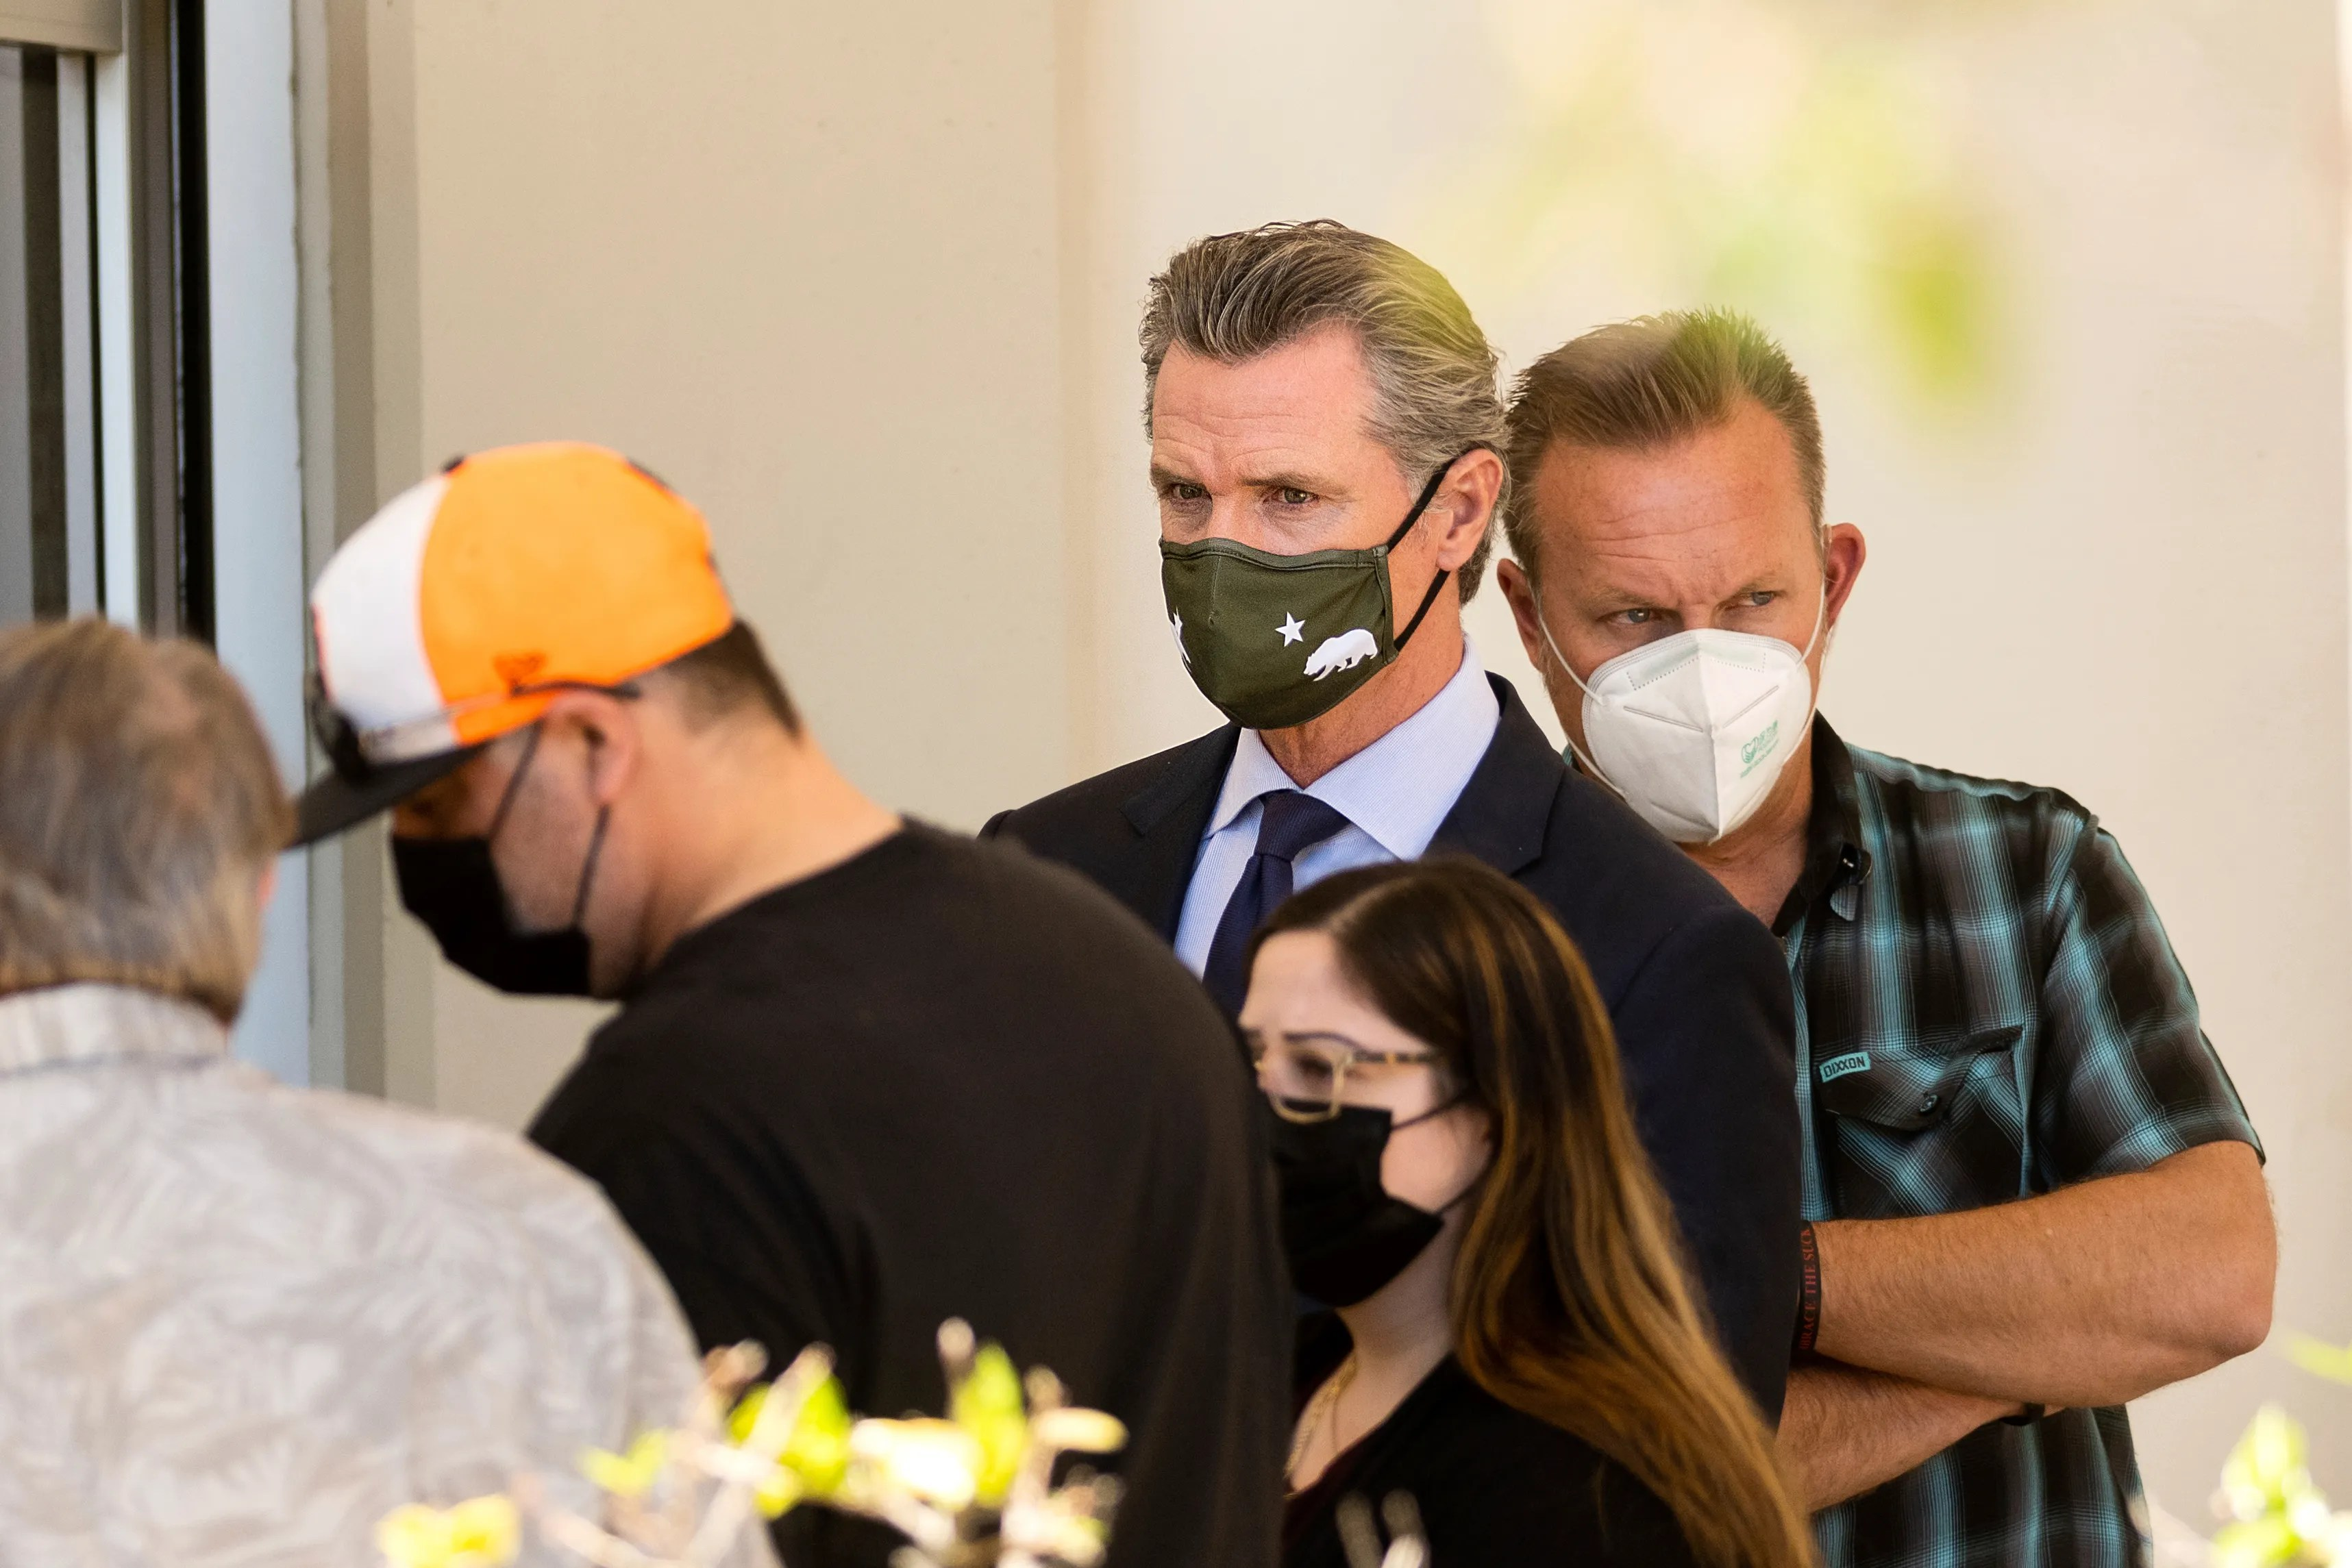 California Gov. Gavin Newsom met with family members of the dead on Wednesday. At a news conference, he expressing frustration with the cycle of mass shootings in the U.S.